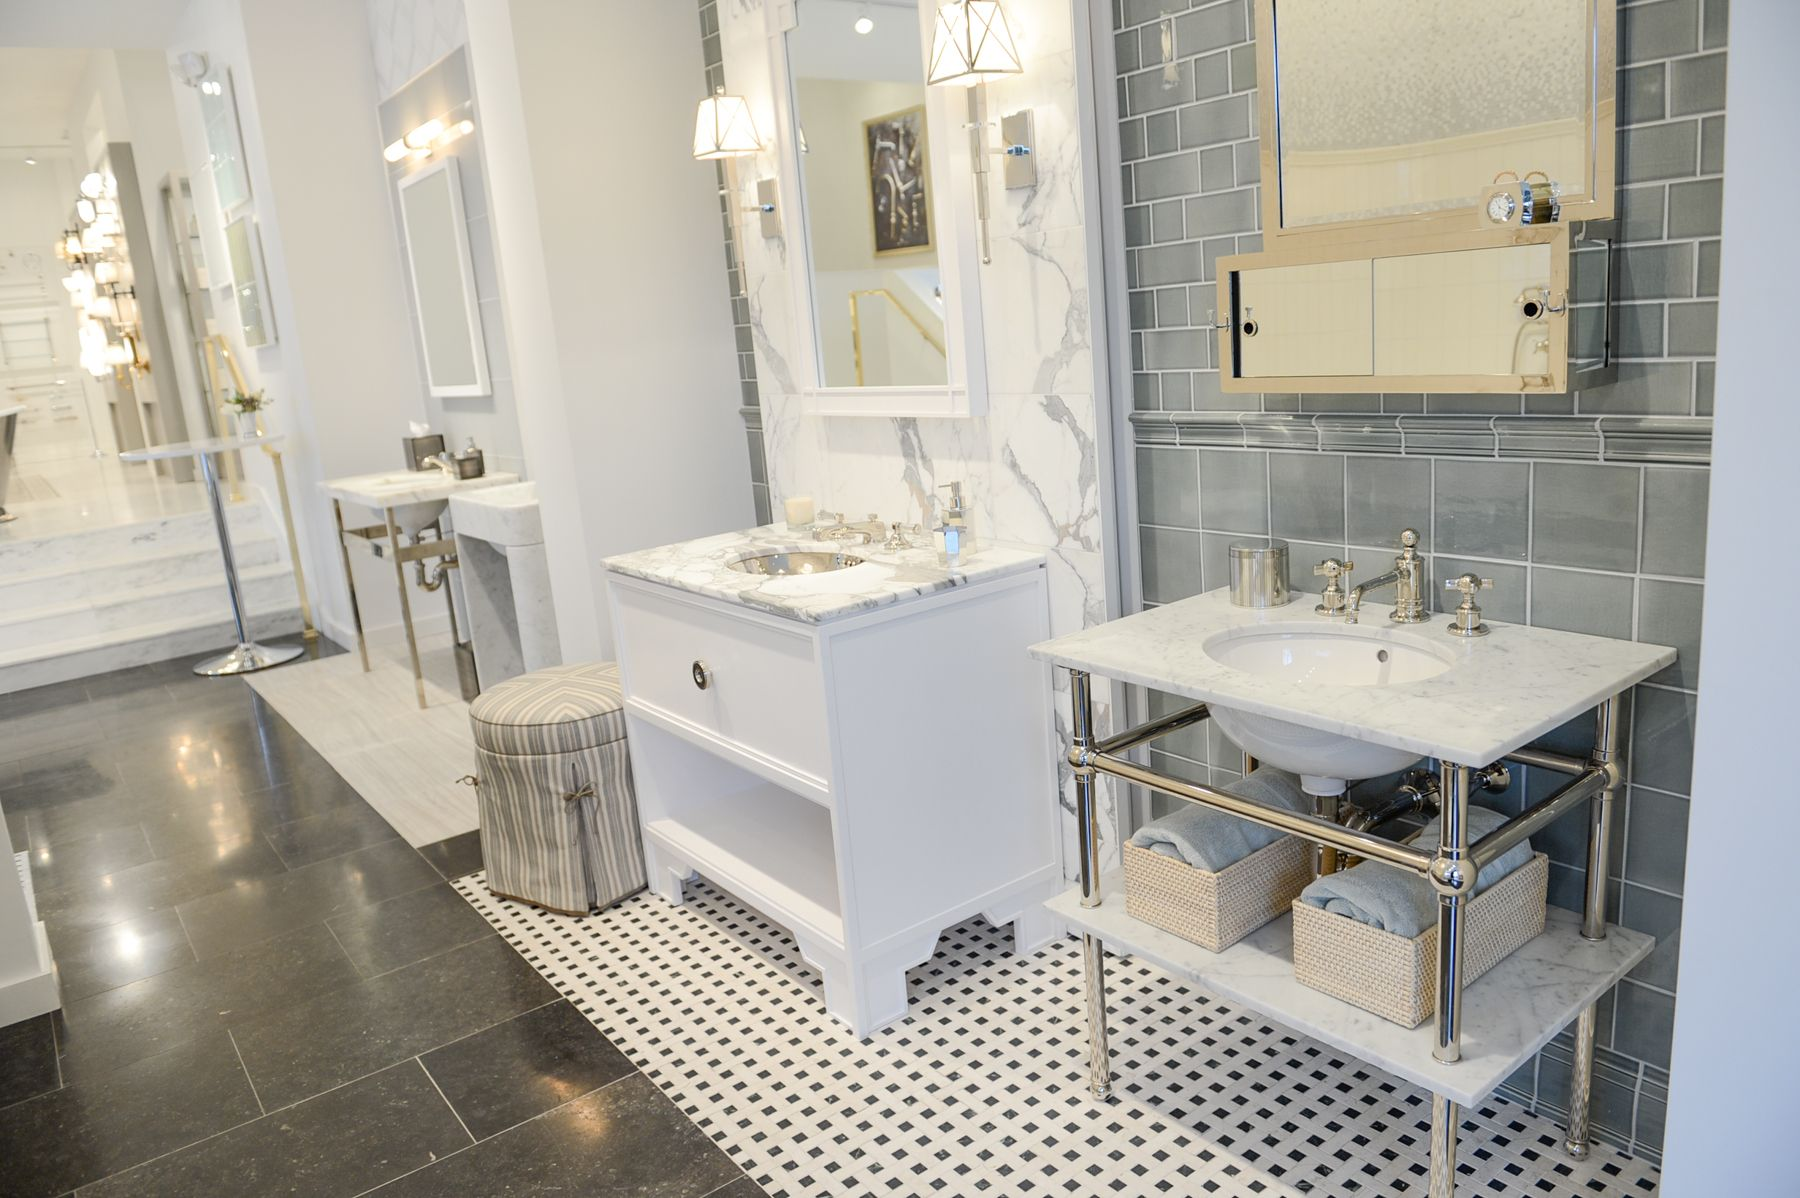 Bathroom Vignette At PIRCH Dallas | PIRCH, Dallas | Pinterest | Vignettes,  Dallas And Showroom